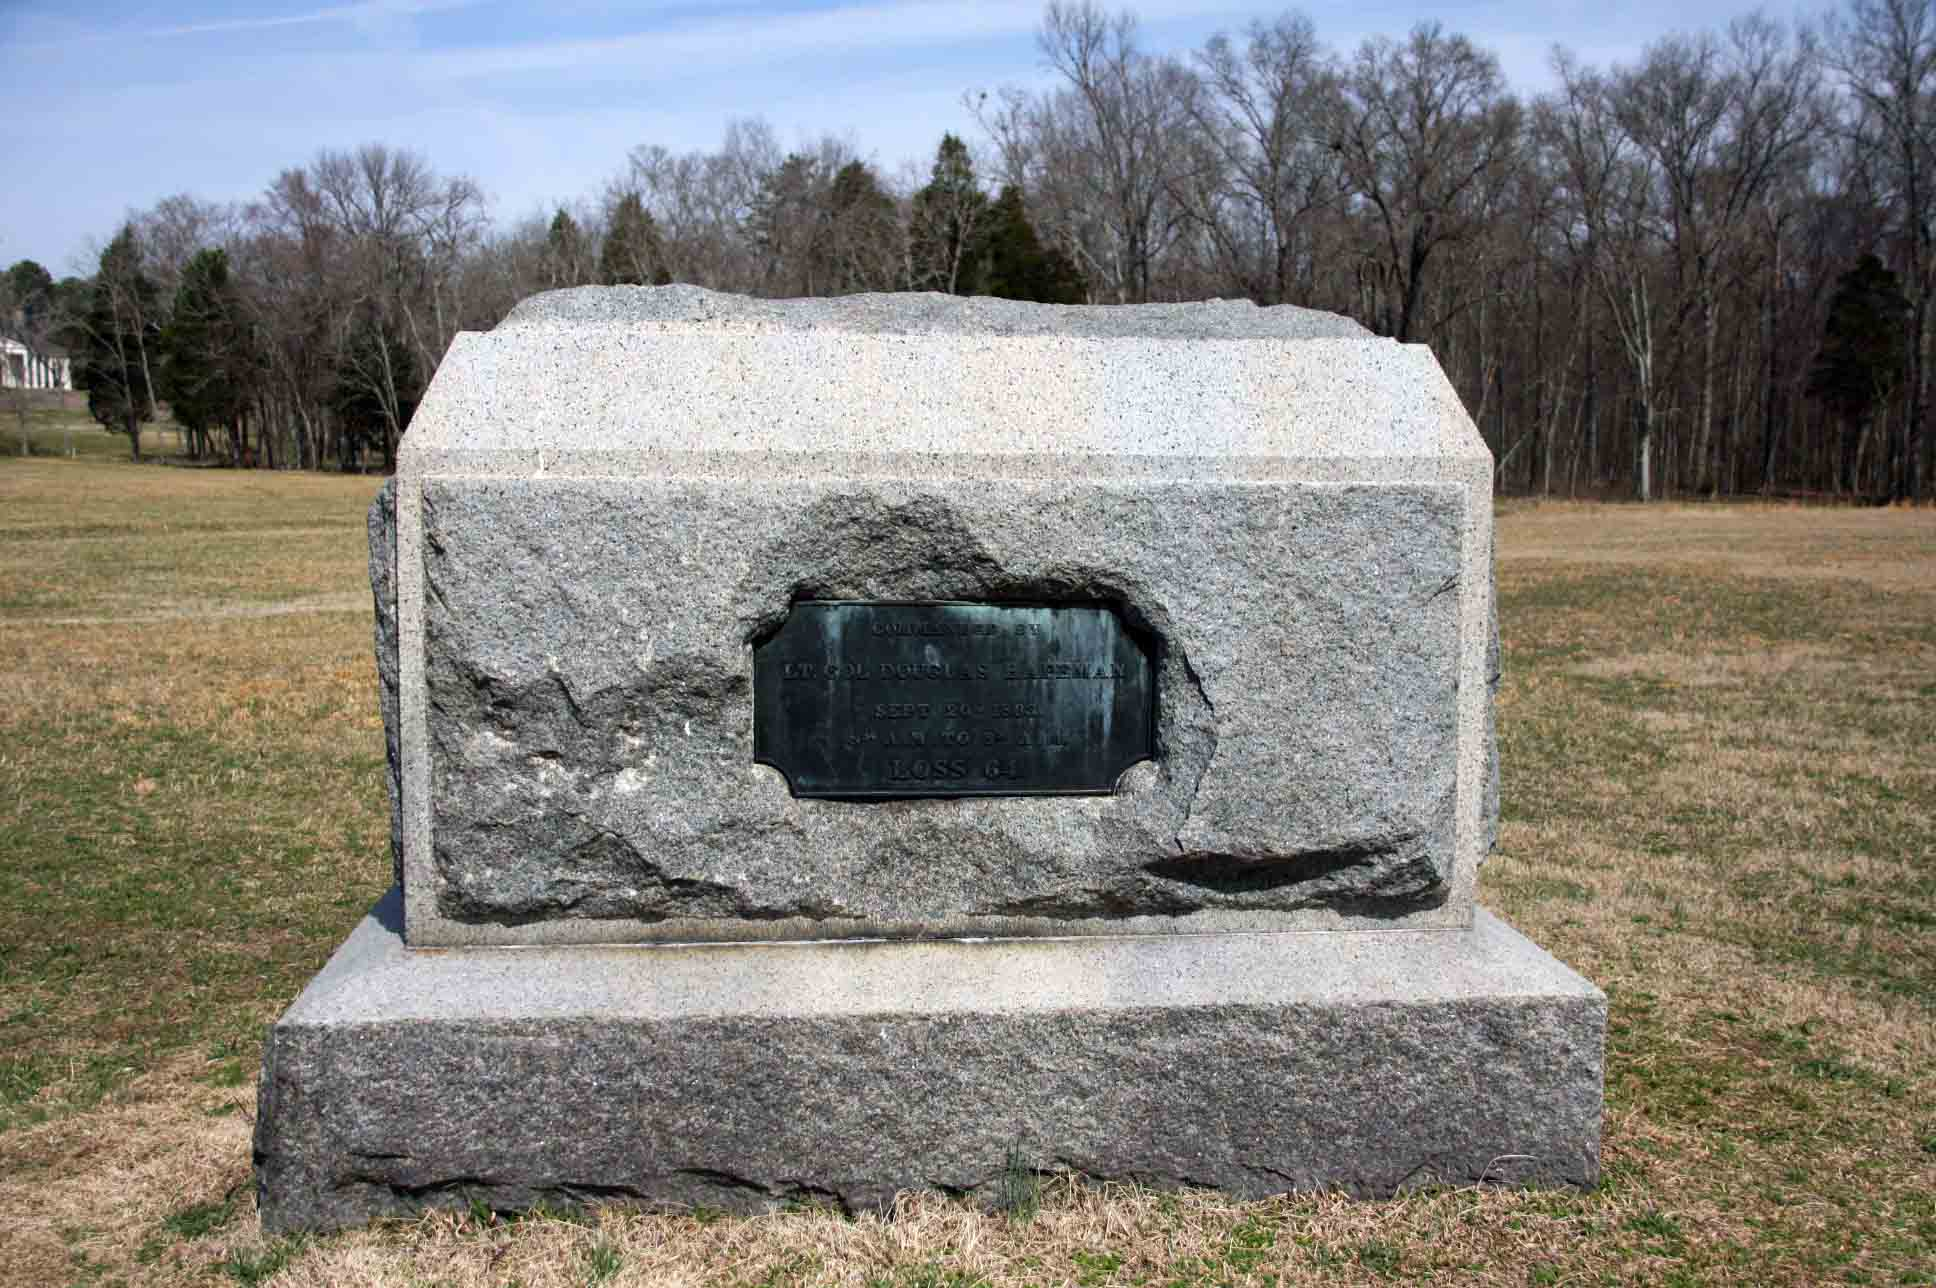 104th Illinois Infantry Monument, click photo to enlarge.